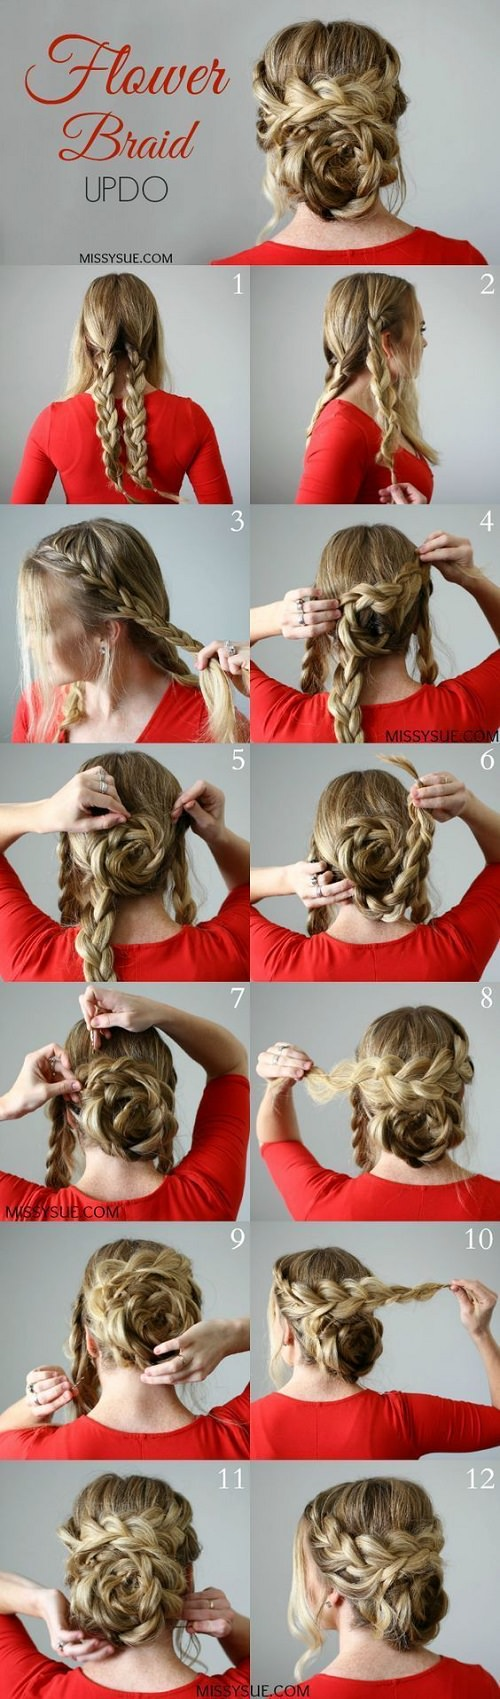 30 Hairstyles for long hair with step by step instructions.